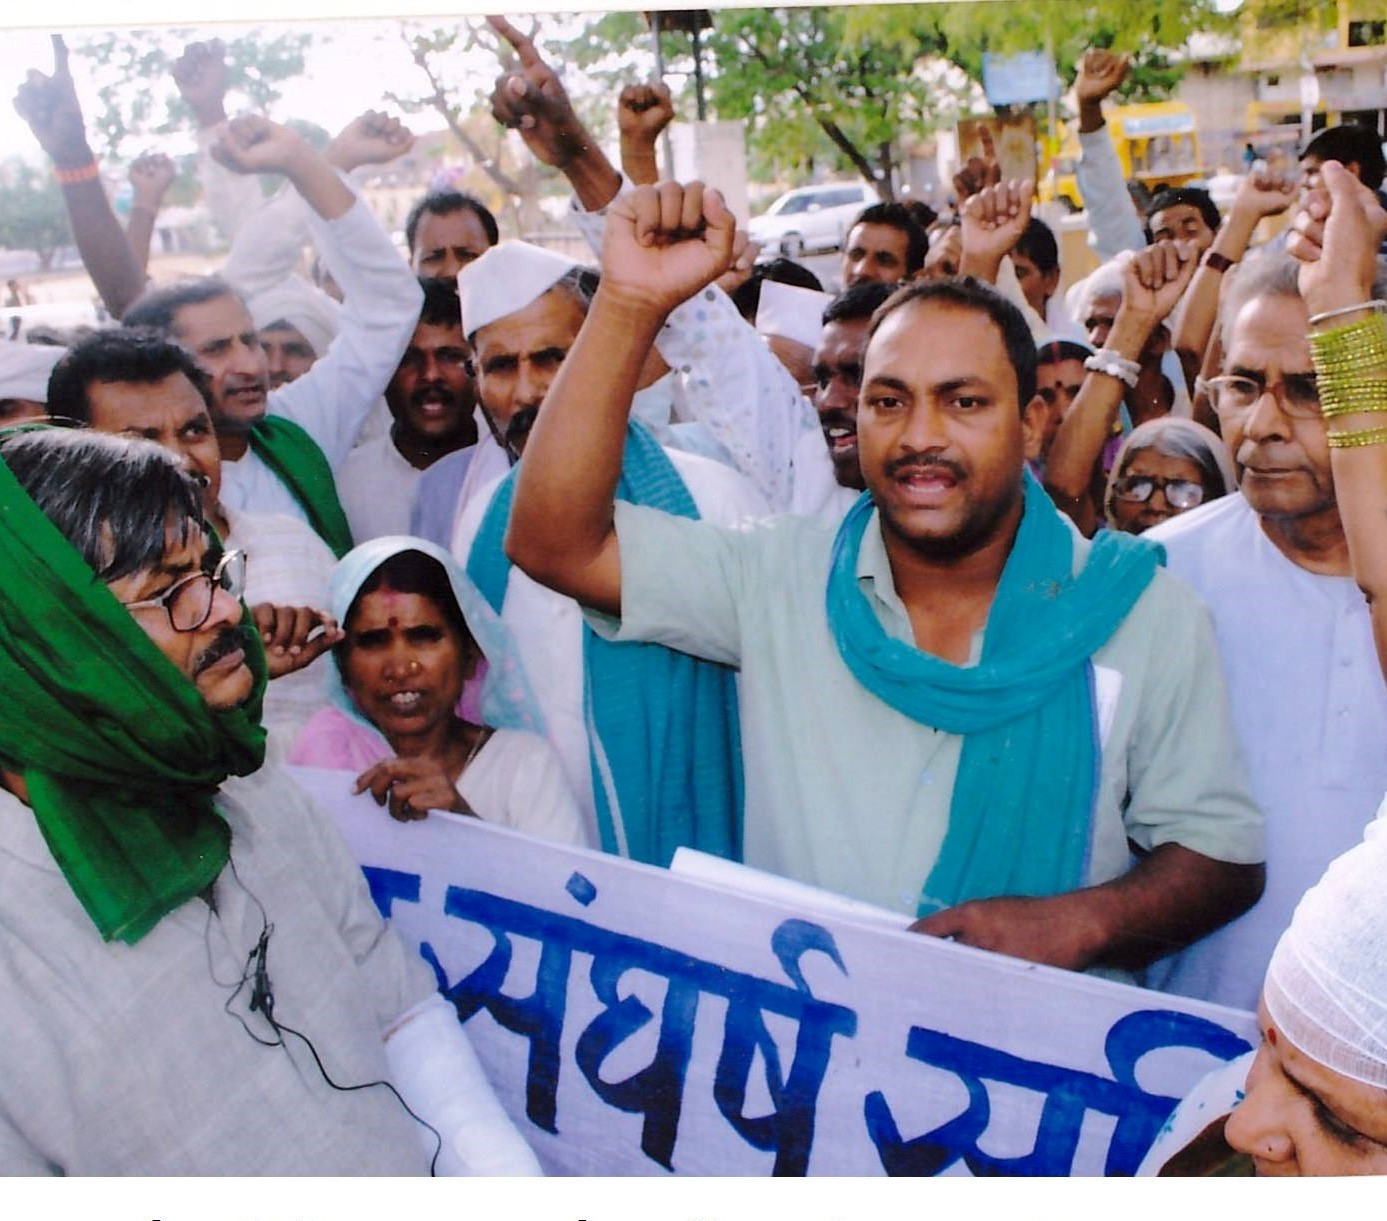 Protesters against Adani's Pench power plans in Chhindwara, 2010. Image courtesy KSS